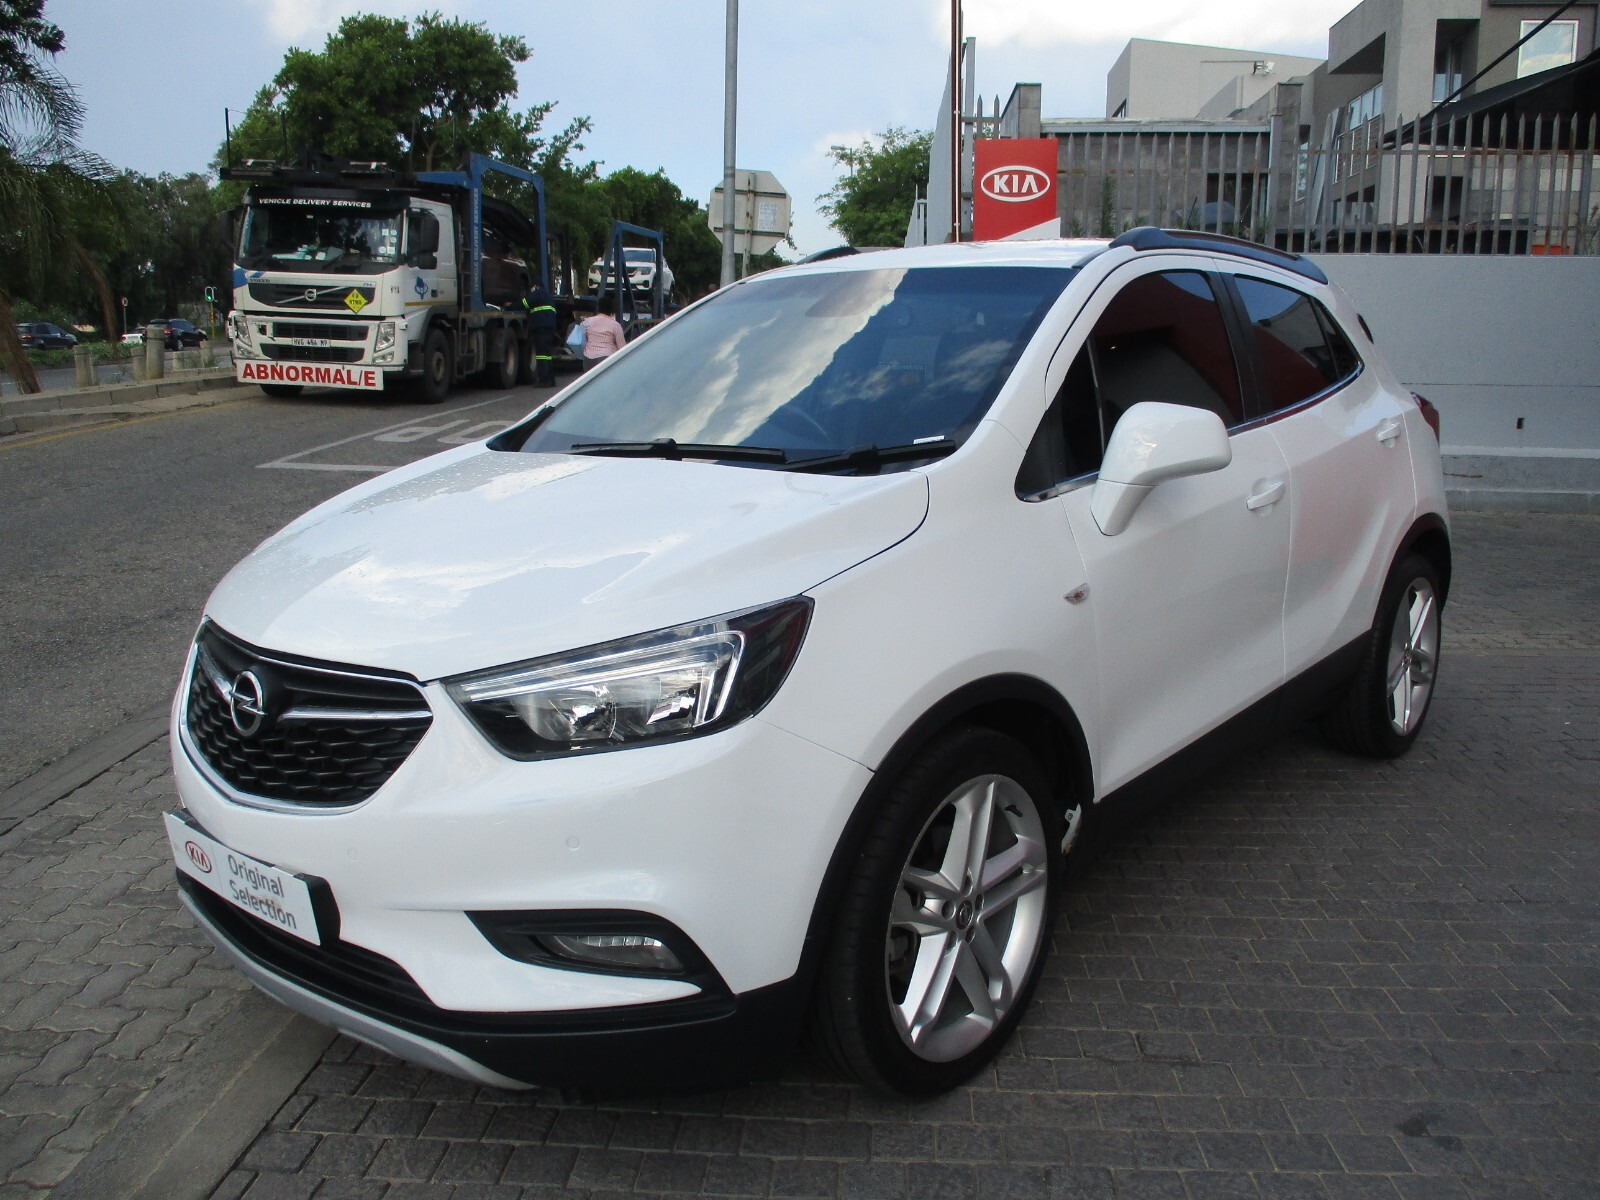 OPEL / X 1.4T COSMO A/T Sandton 2326788